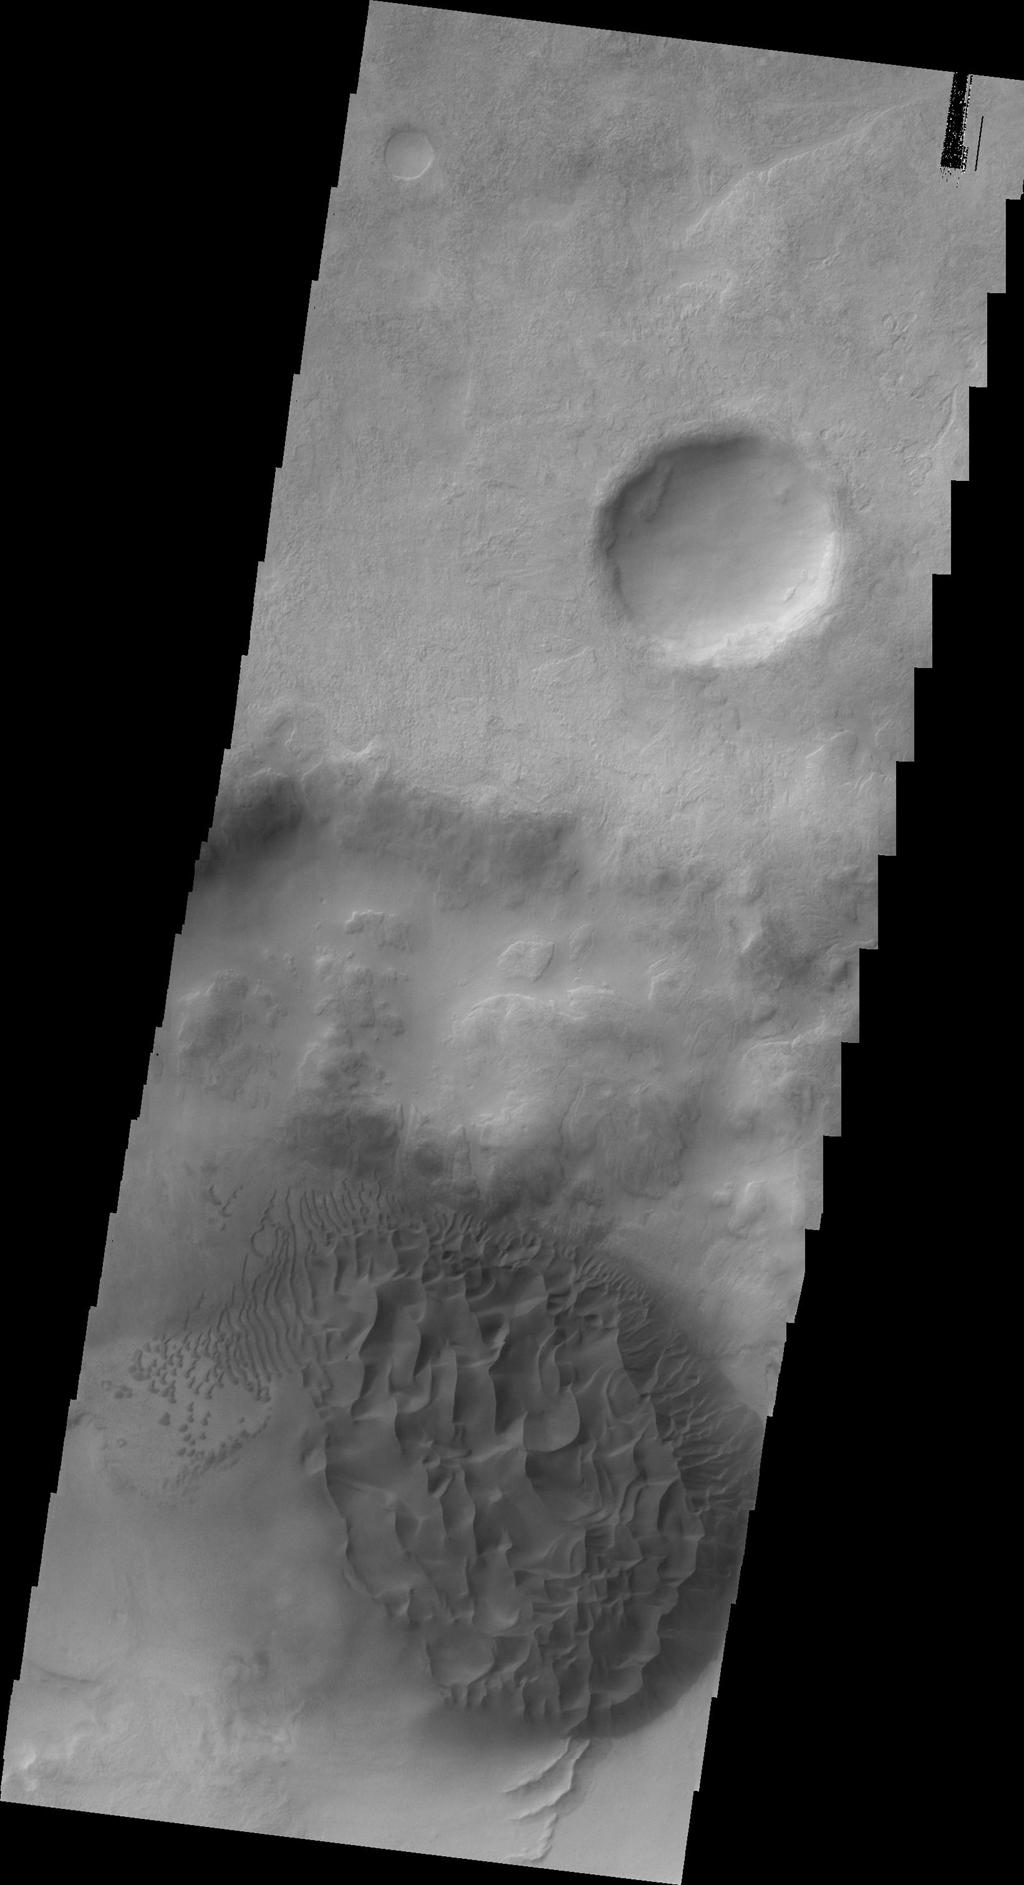 The dune field in this image taken by NASA's 2001 Mars Odyssey is located on the floor of an unnamed crater east of Proctor Crater.